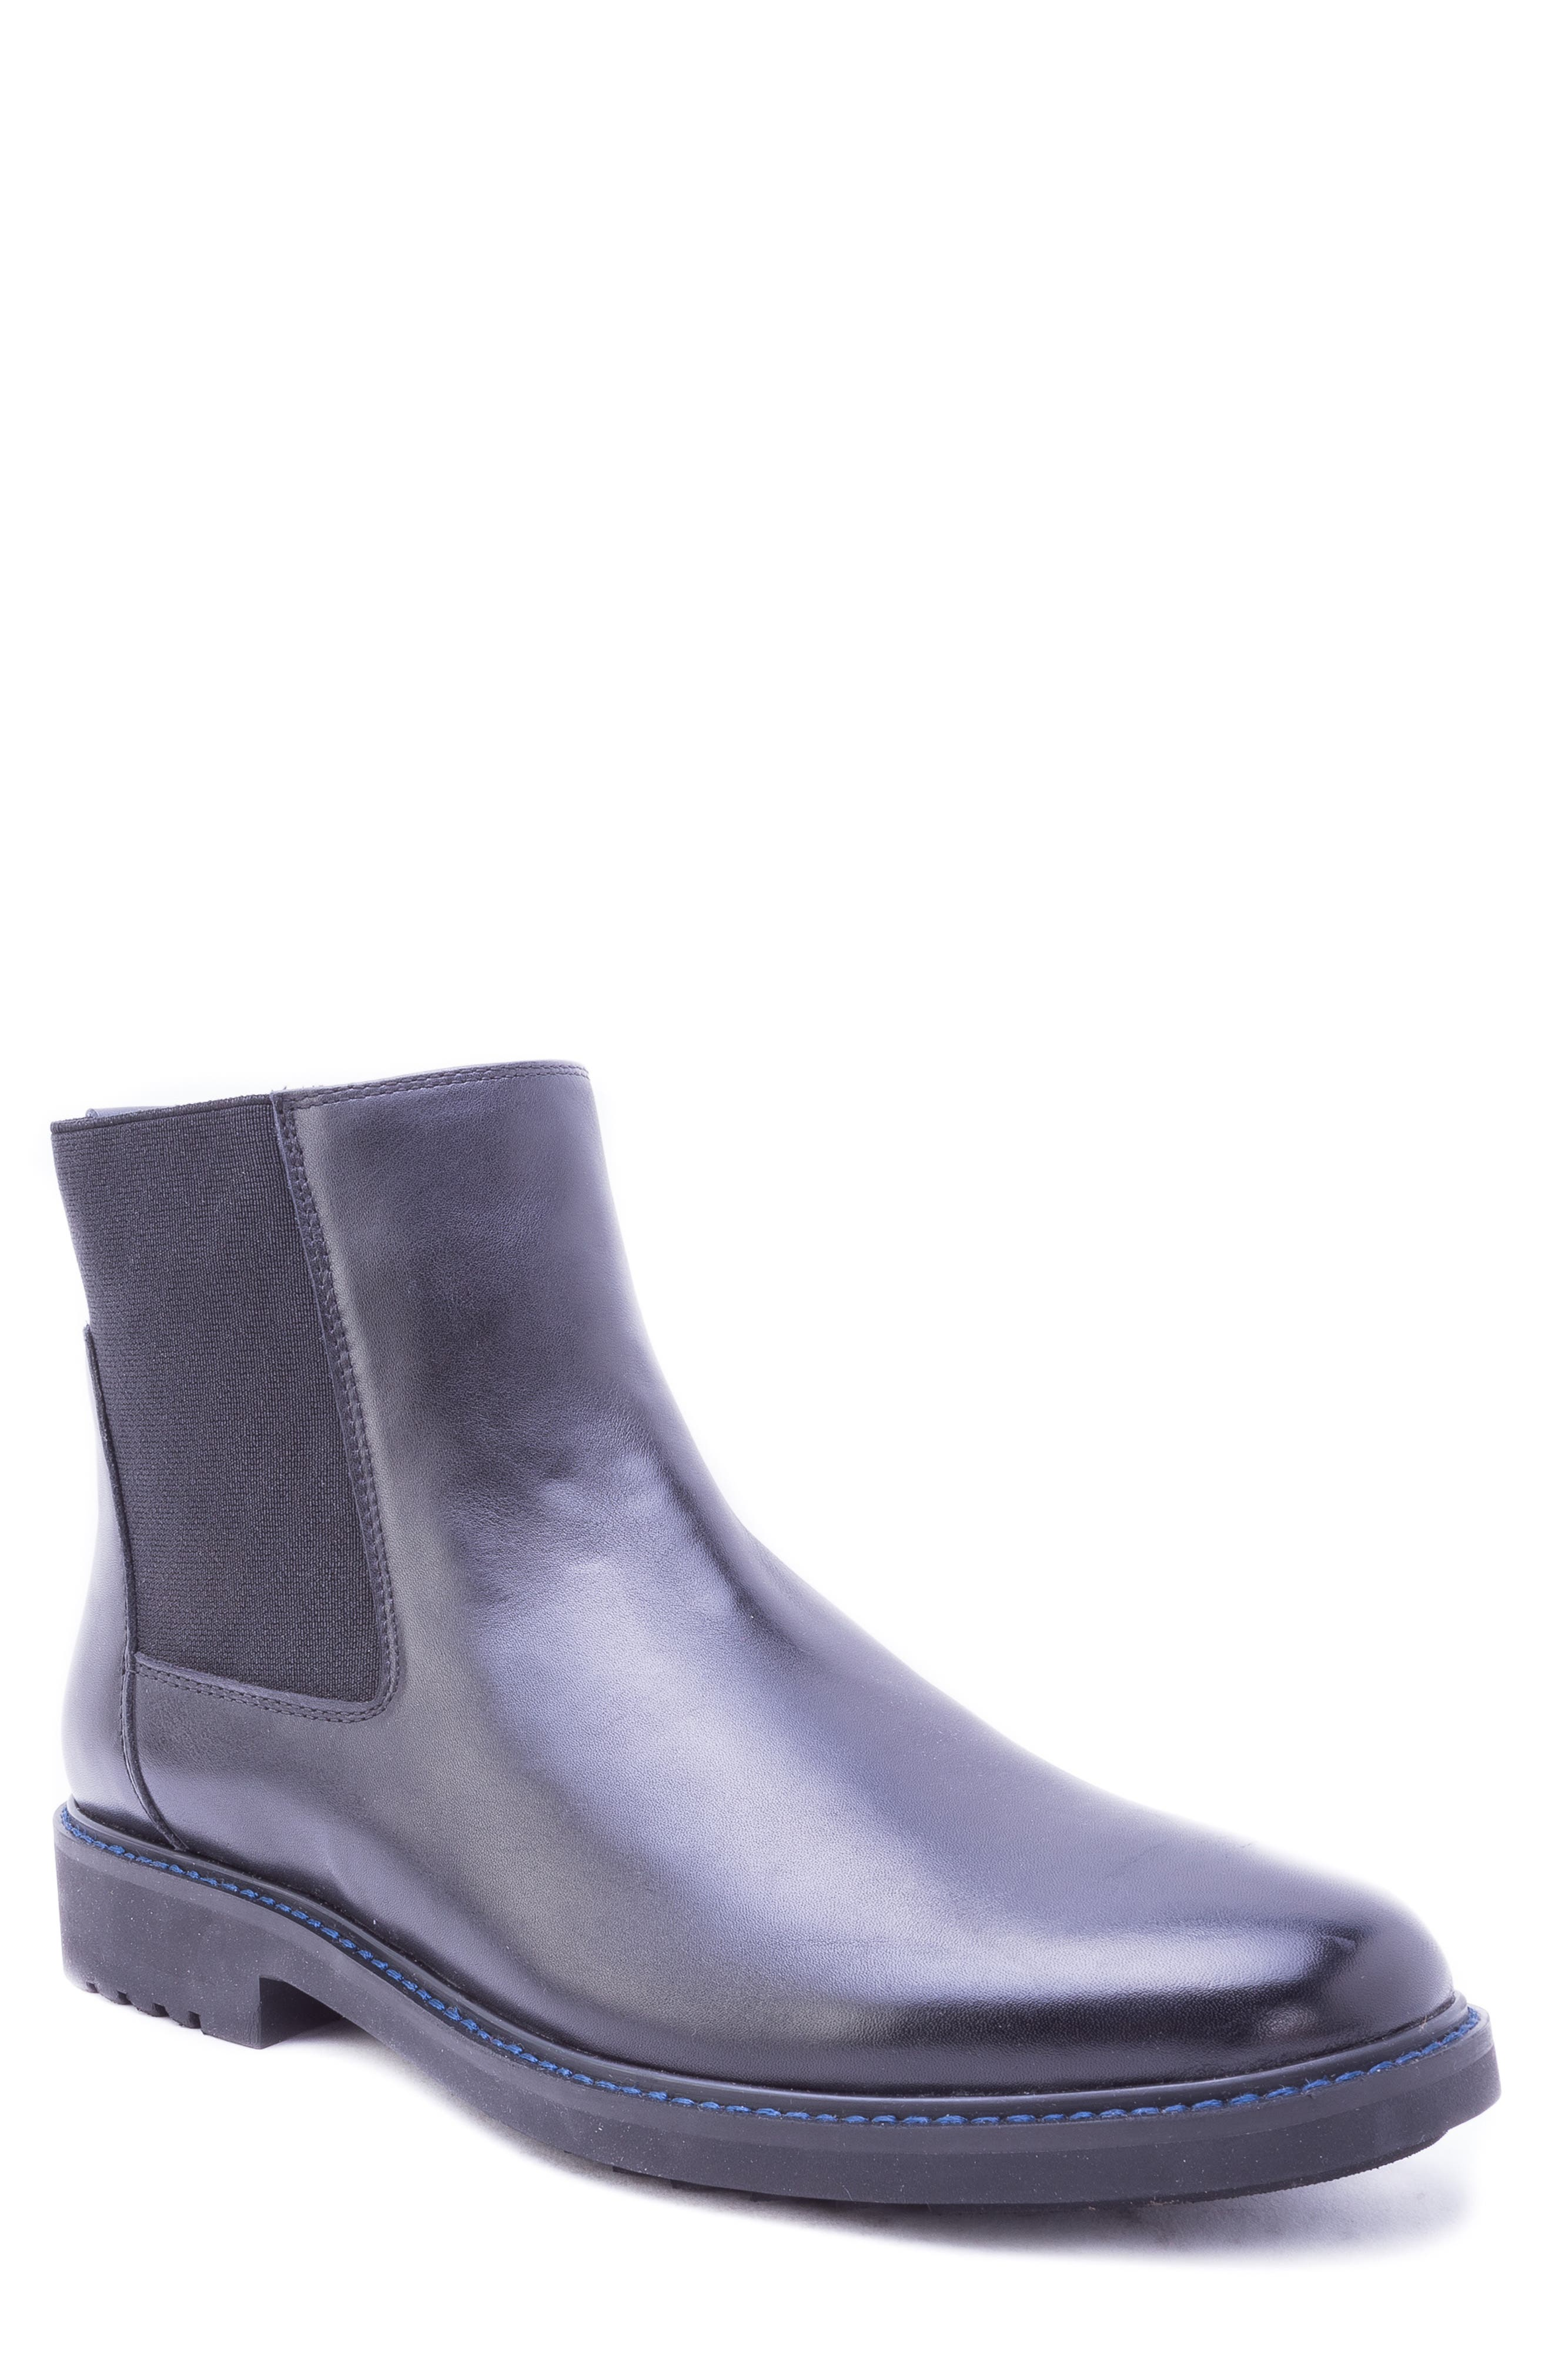 Riviere Chelsea Boot,                         Main,                         color, 001